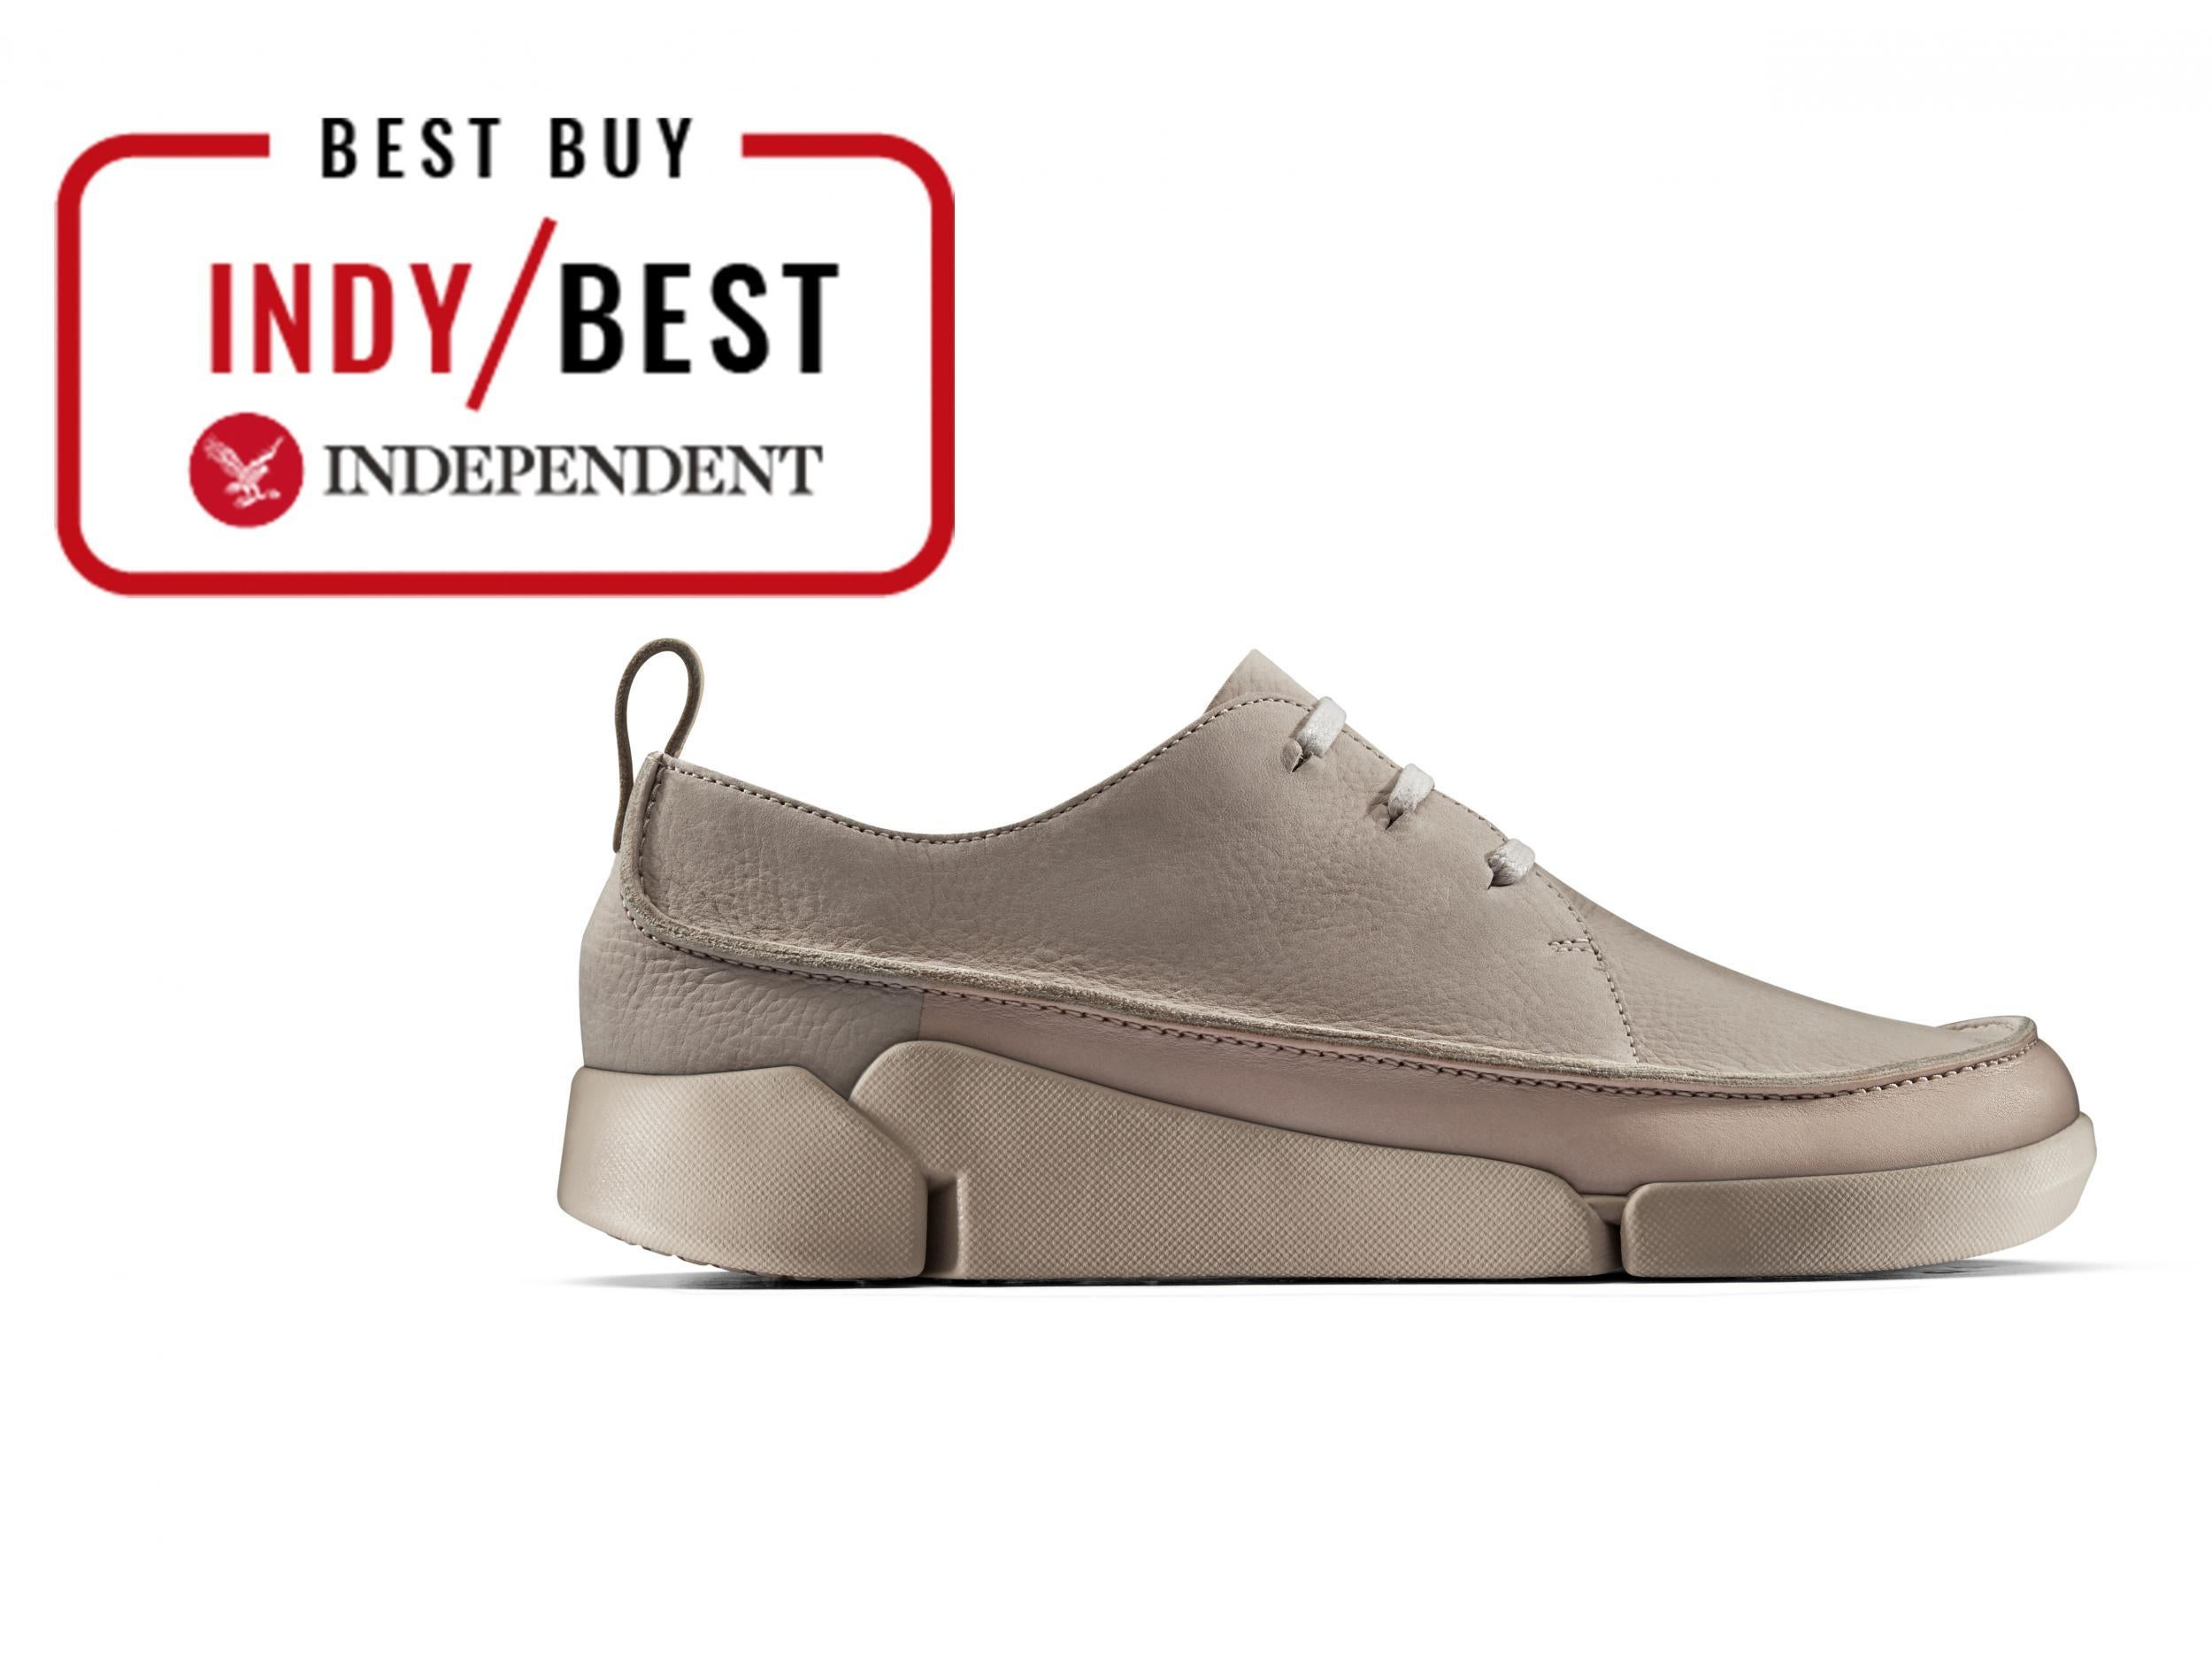 3f28de8831c 10 best women's shoes for wide feet | The Independent